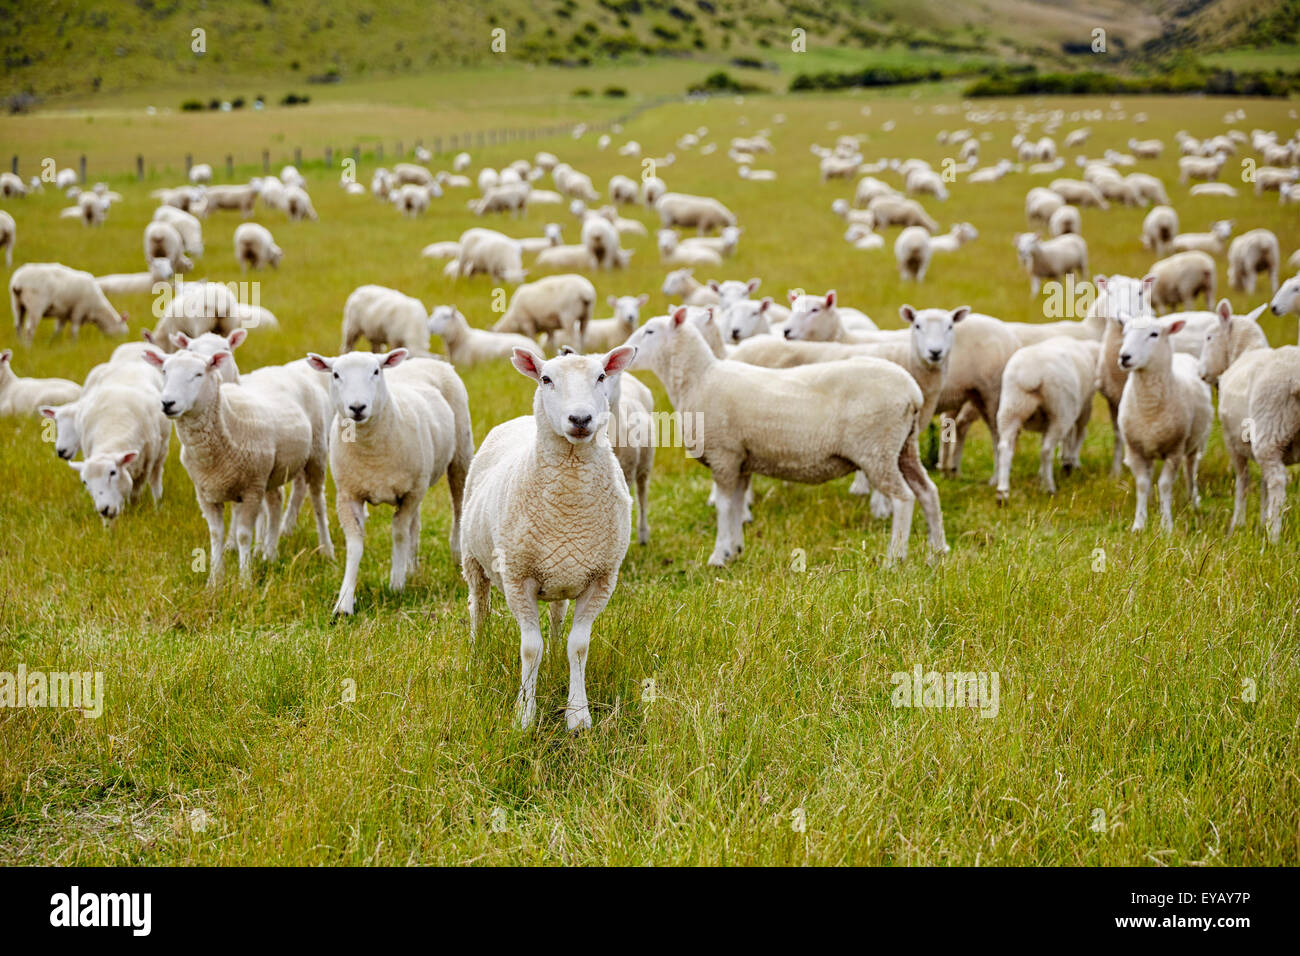 Sheep farm New Zealand - Stock Image